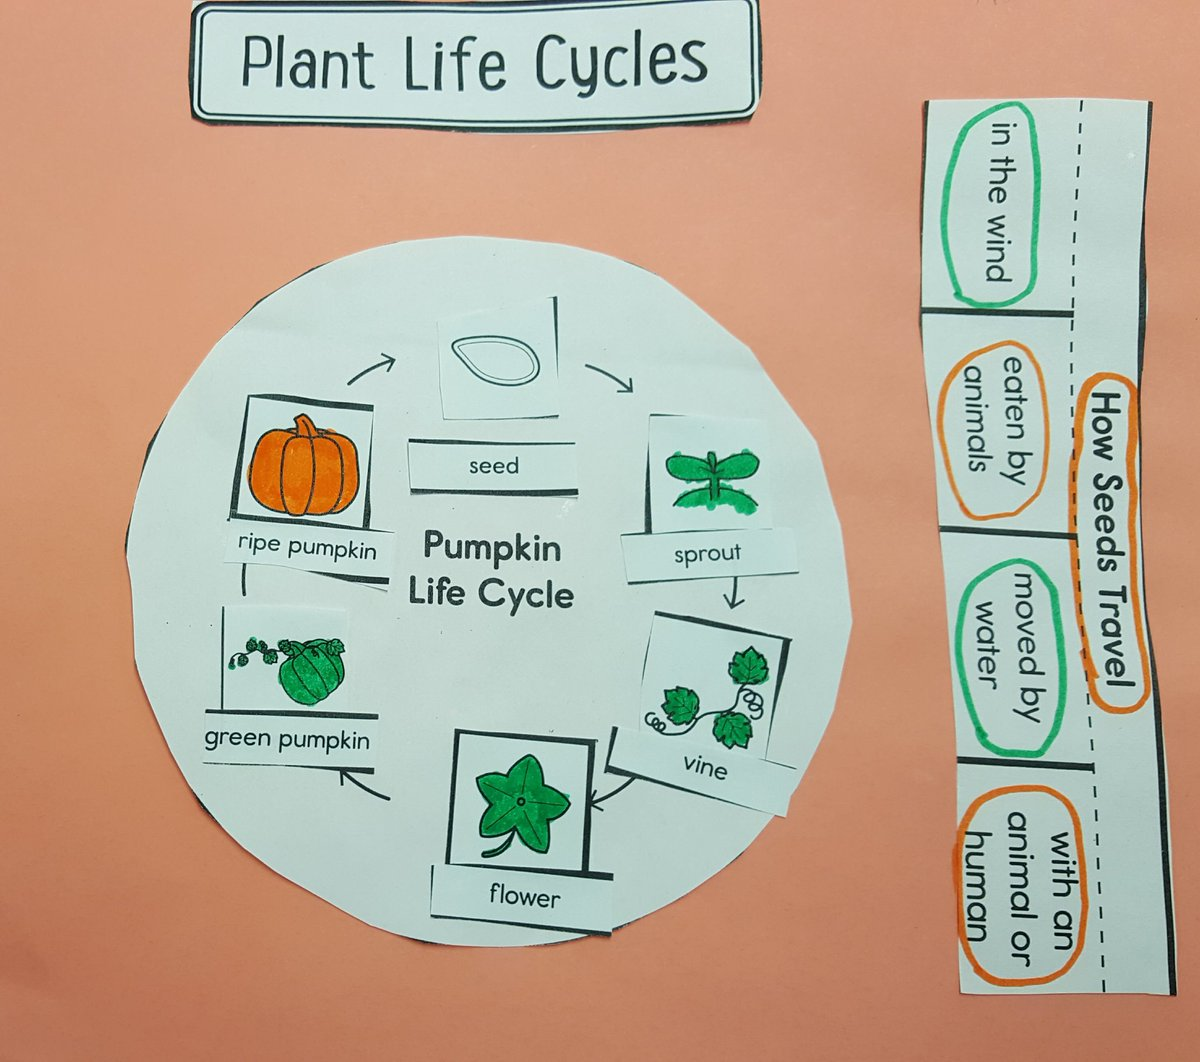 hight resolution of brad linko on twitter just in time for halloween pumpkin science 2lrocks dg58learns sciencerules